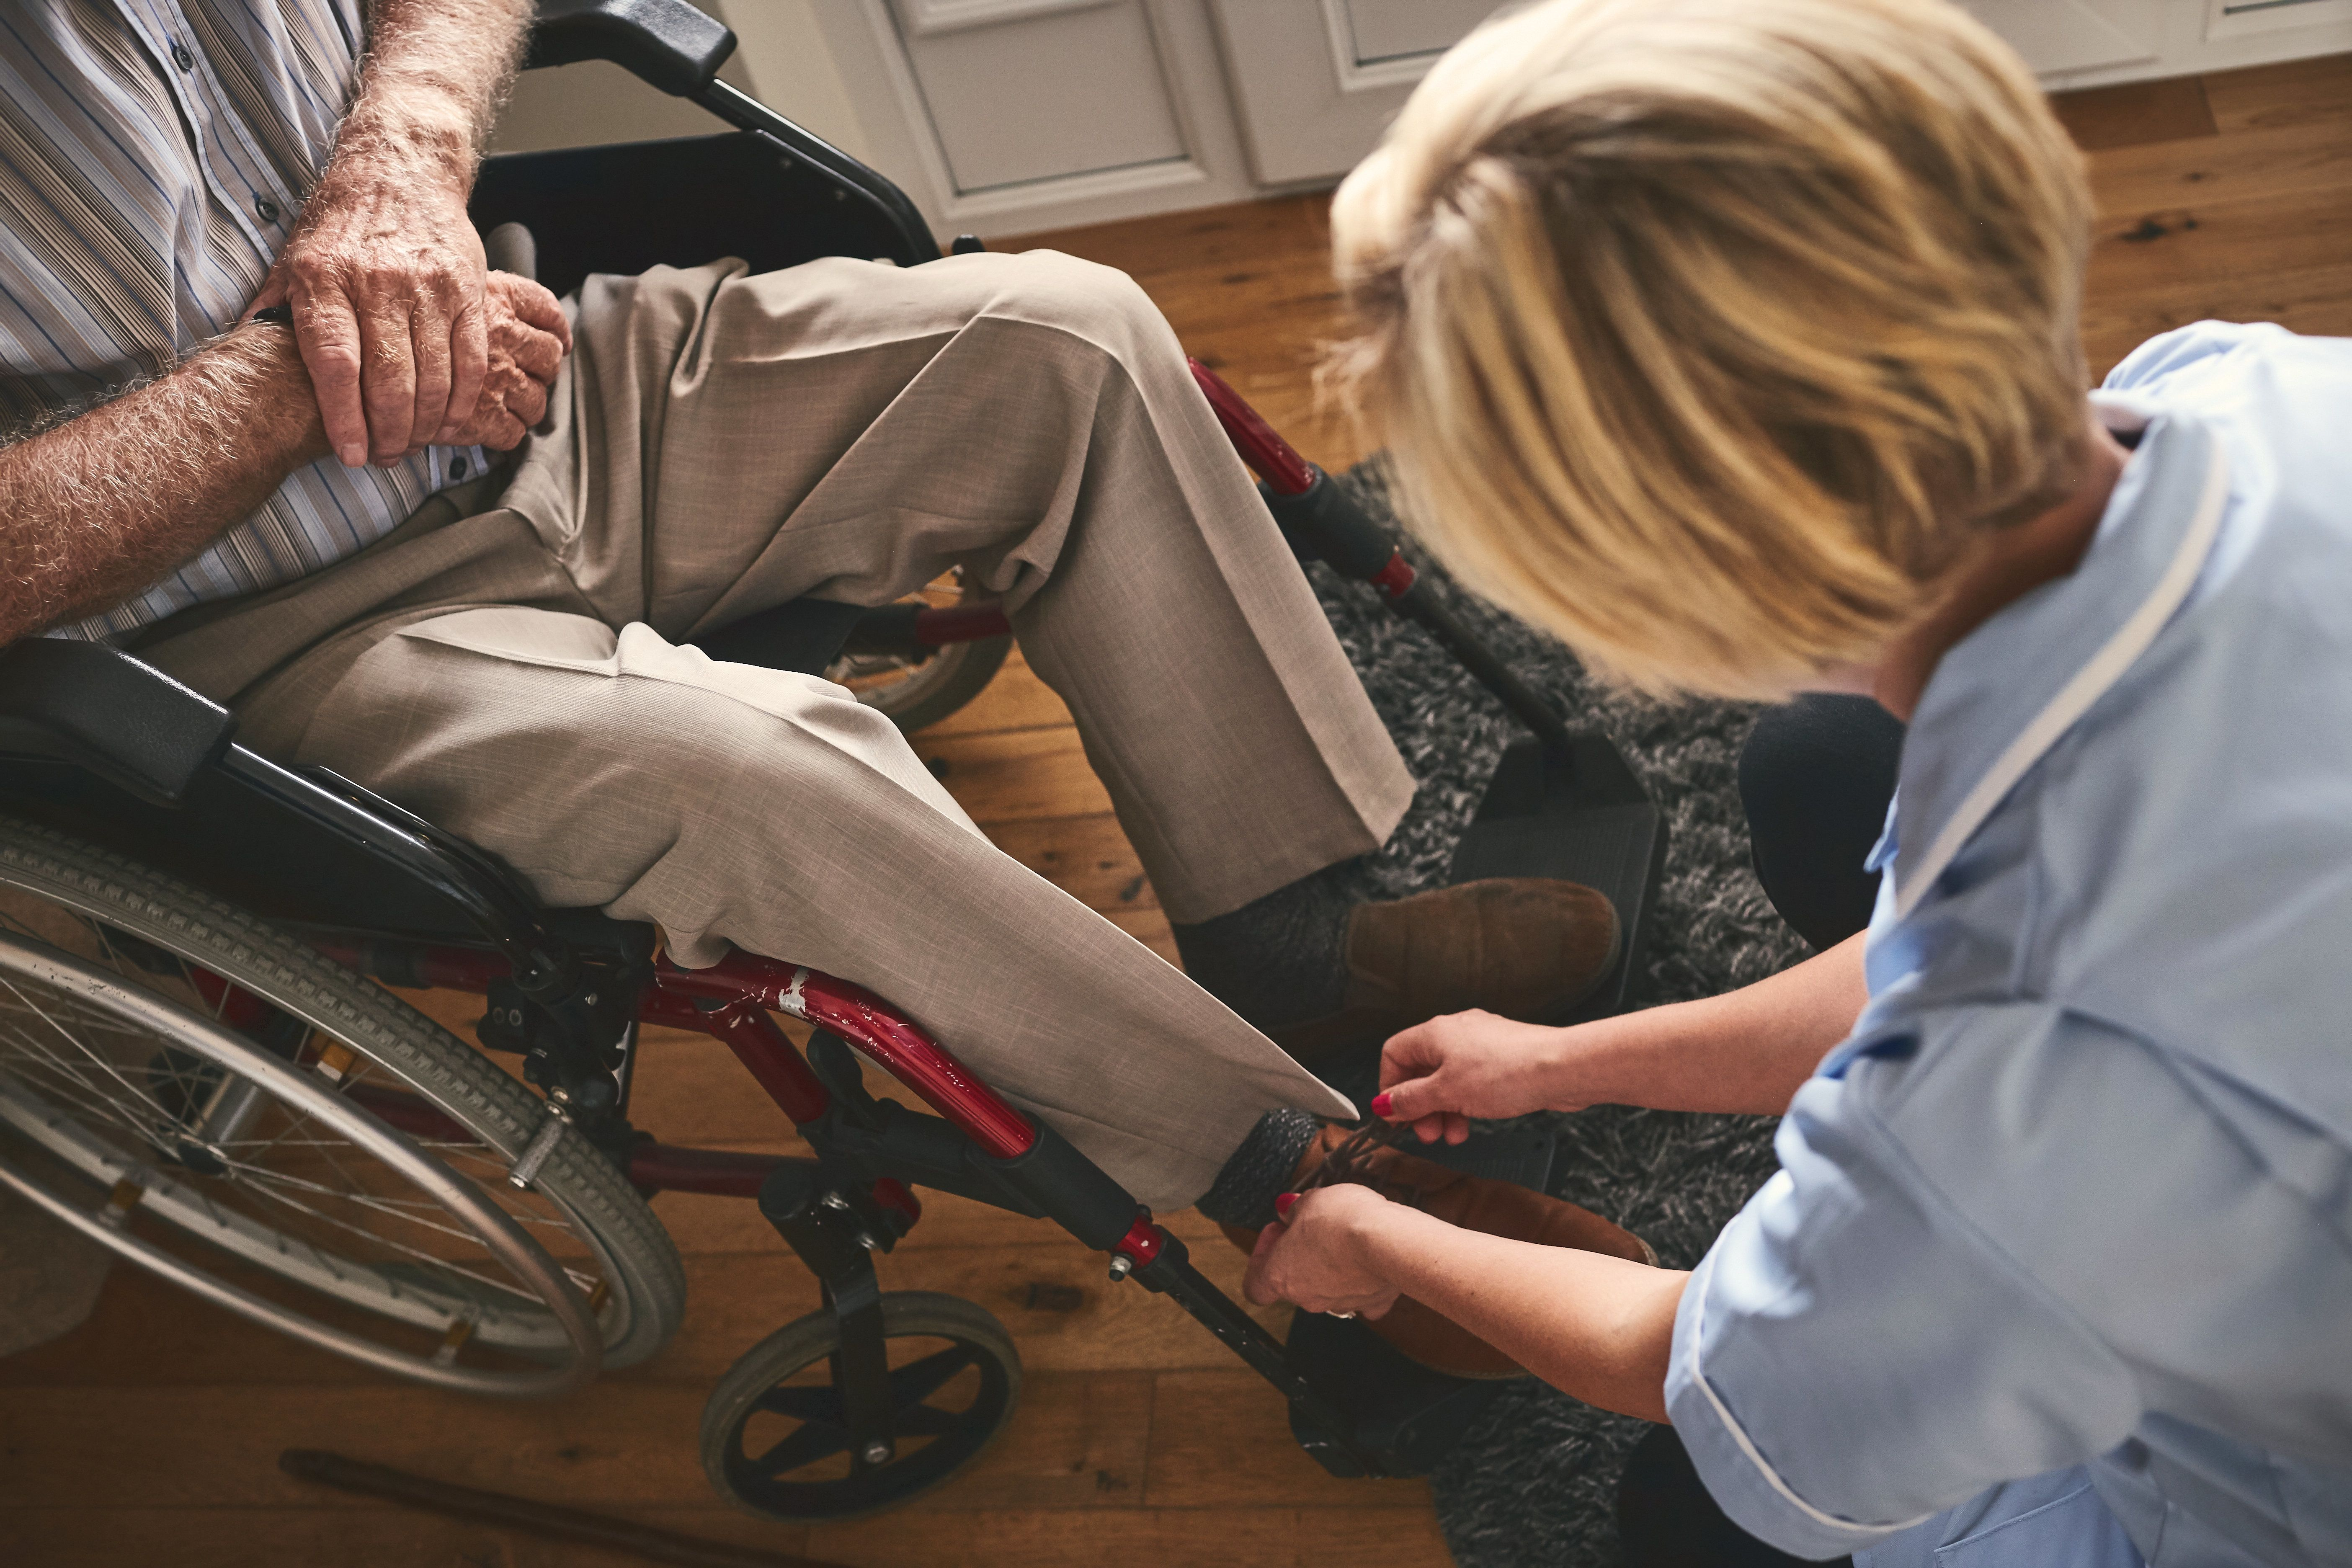 Over-40s Should Pay 'Social Care Premium' To Plug Multi-Billion Pound Funding